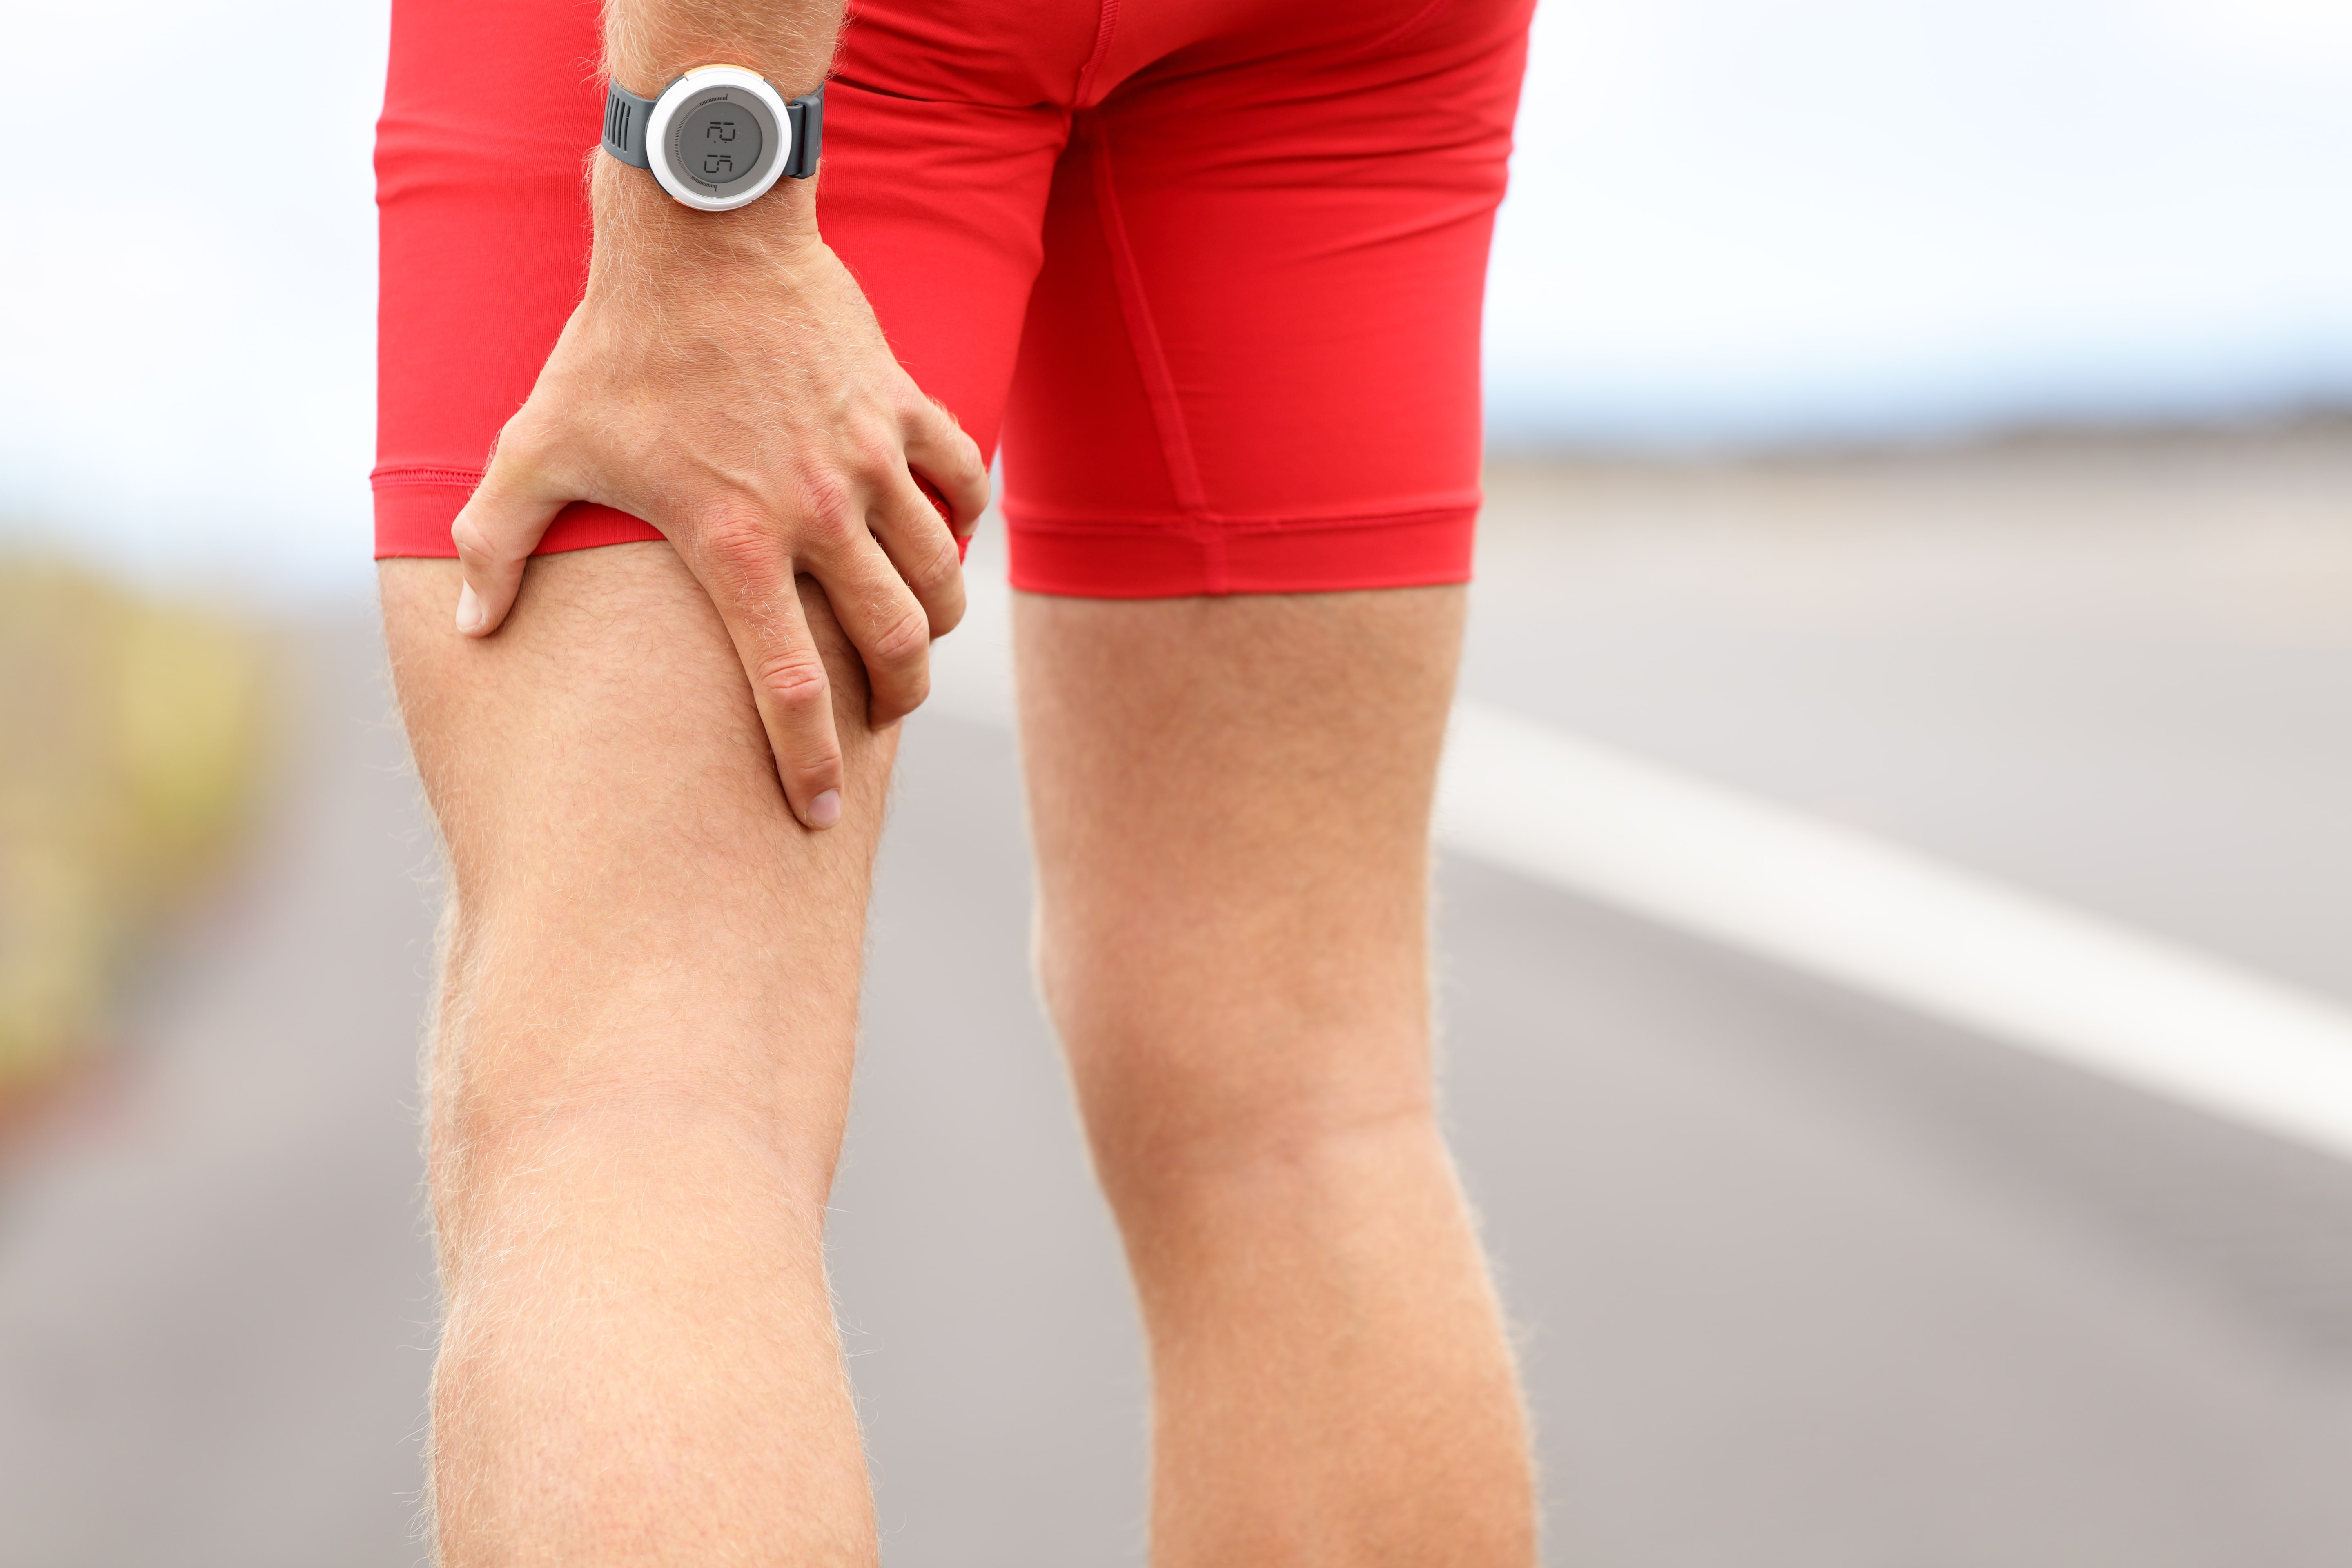 How to Manage Leg Pain Leading Up to Your Discectomy